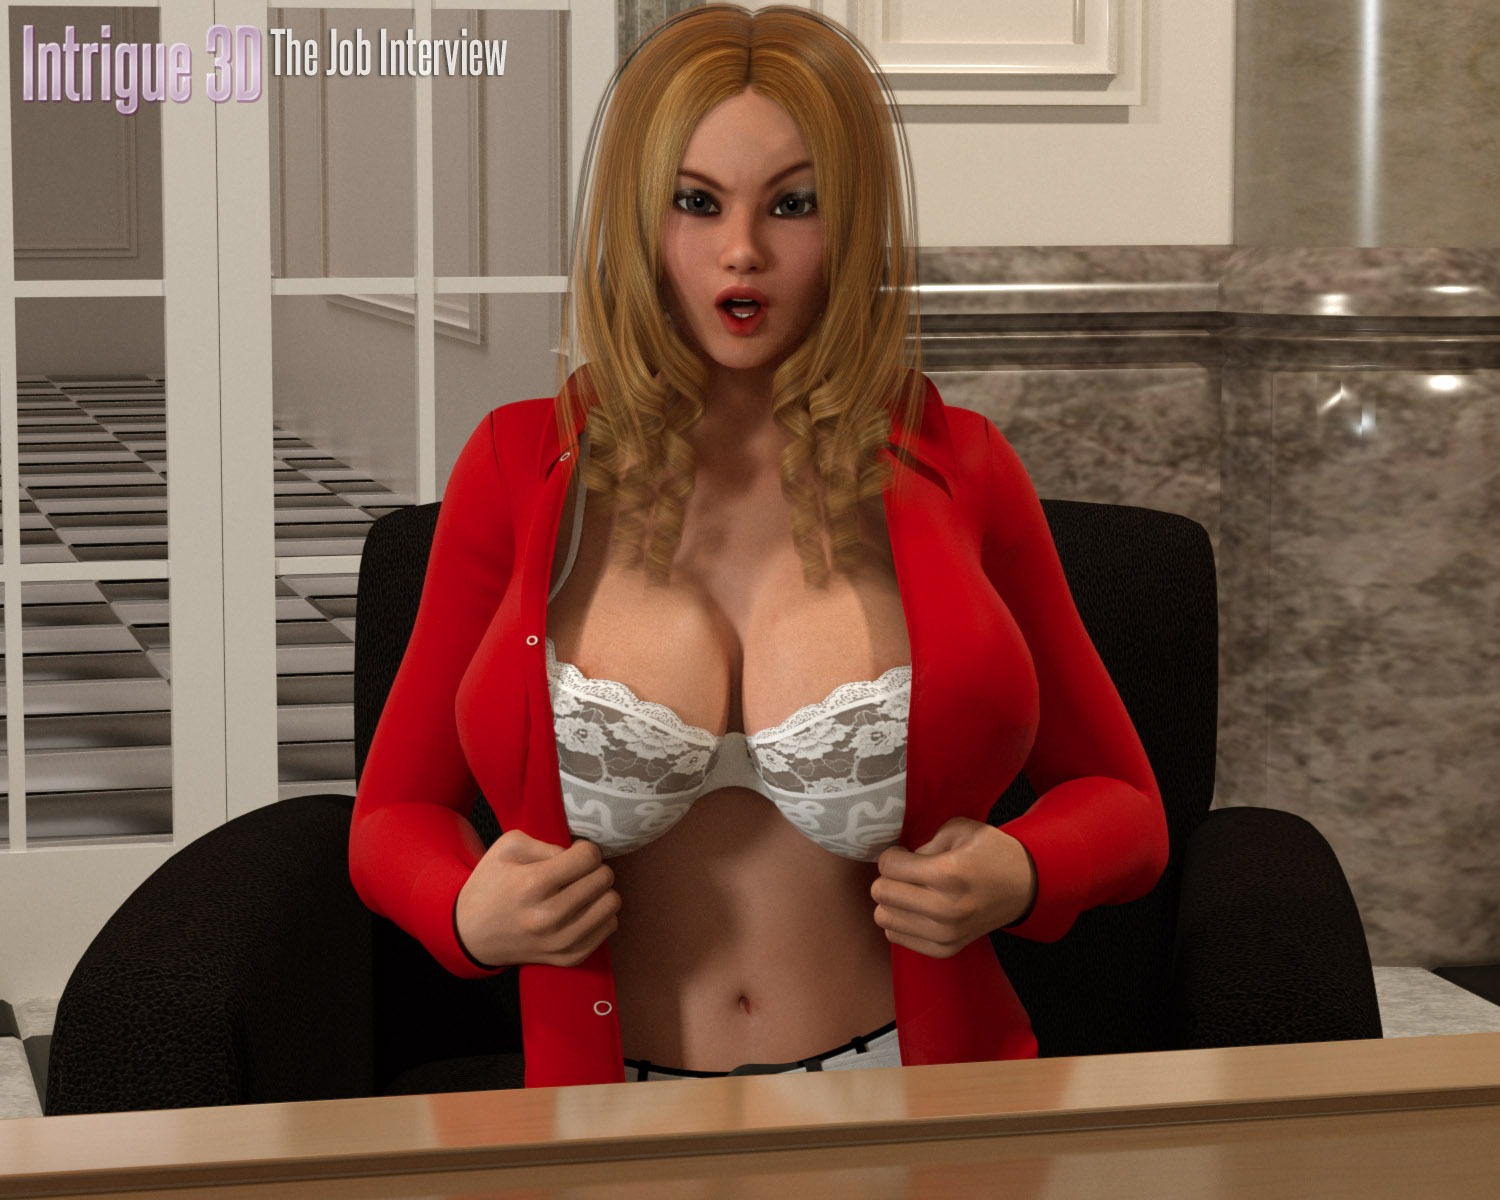 Intrigue3D – She came for job interview